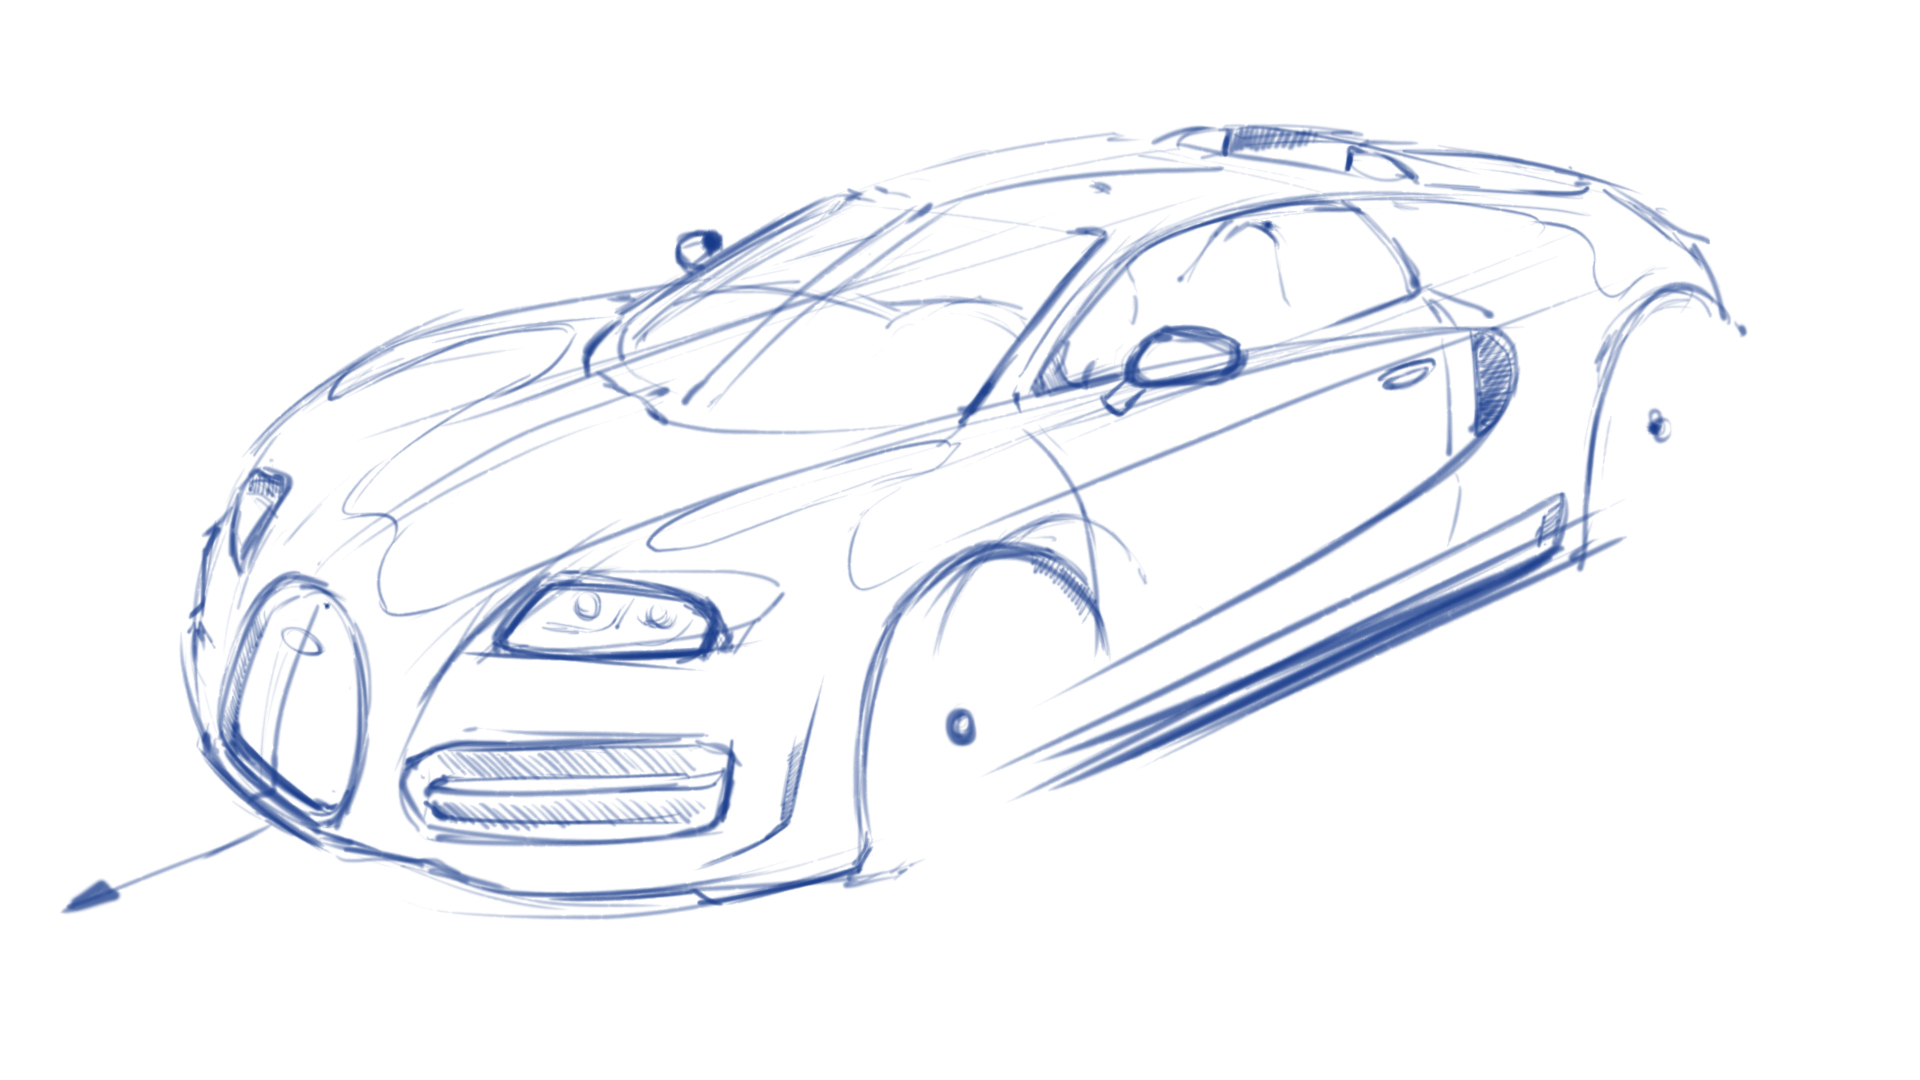 Fast Cars Drawing at GetDrawings.com   Free for personal use Fast ...